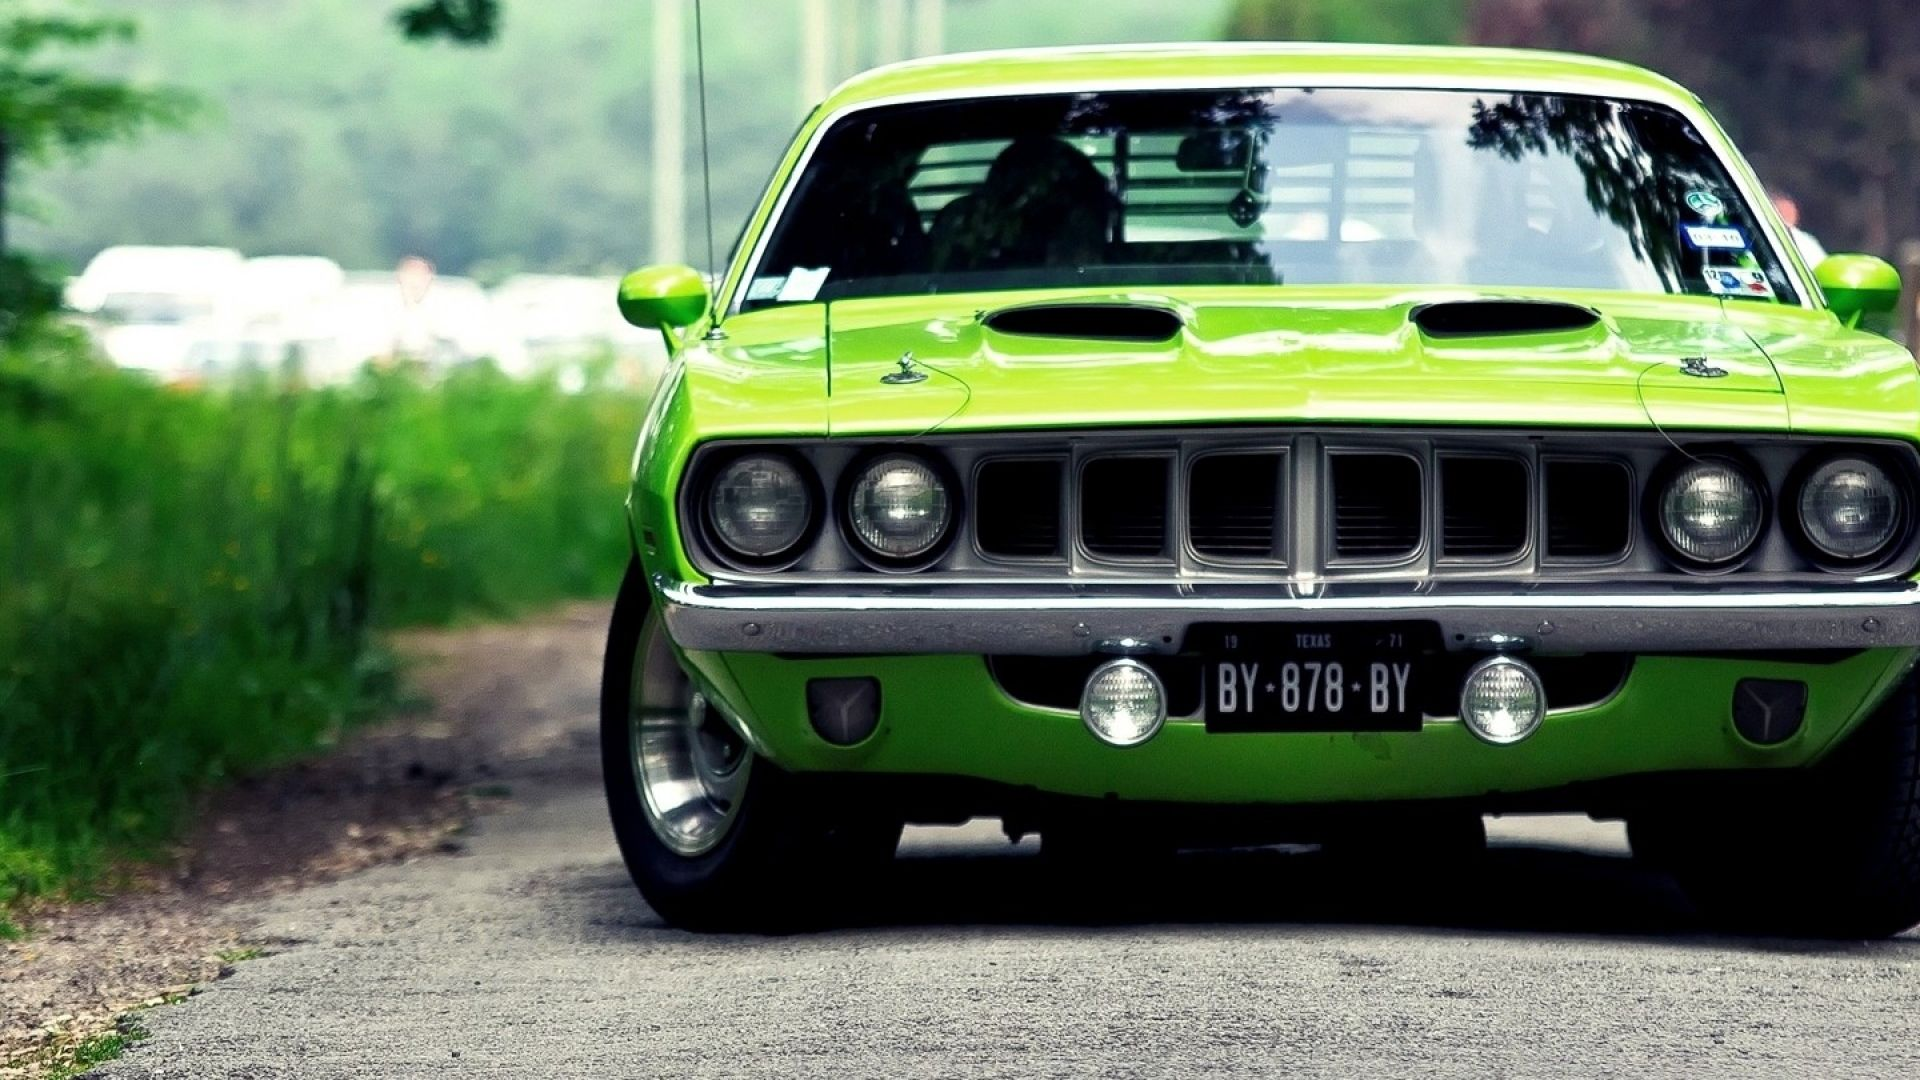 New Mind Blowing Car Wallpapers furthermore Mopar Muscle Car Wallpaper further E8 B7 91 E8 BD A6 E5 9B BE E7 89 87 E5 A4 A7 E5 85 A8 E5 A3 81 E7 BA B8 additionally Nissan Gt R Nismo White Car   Image furthermore Iphone Black Wallpapers Hd. on muscle car wallpaper hd